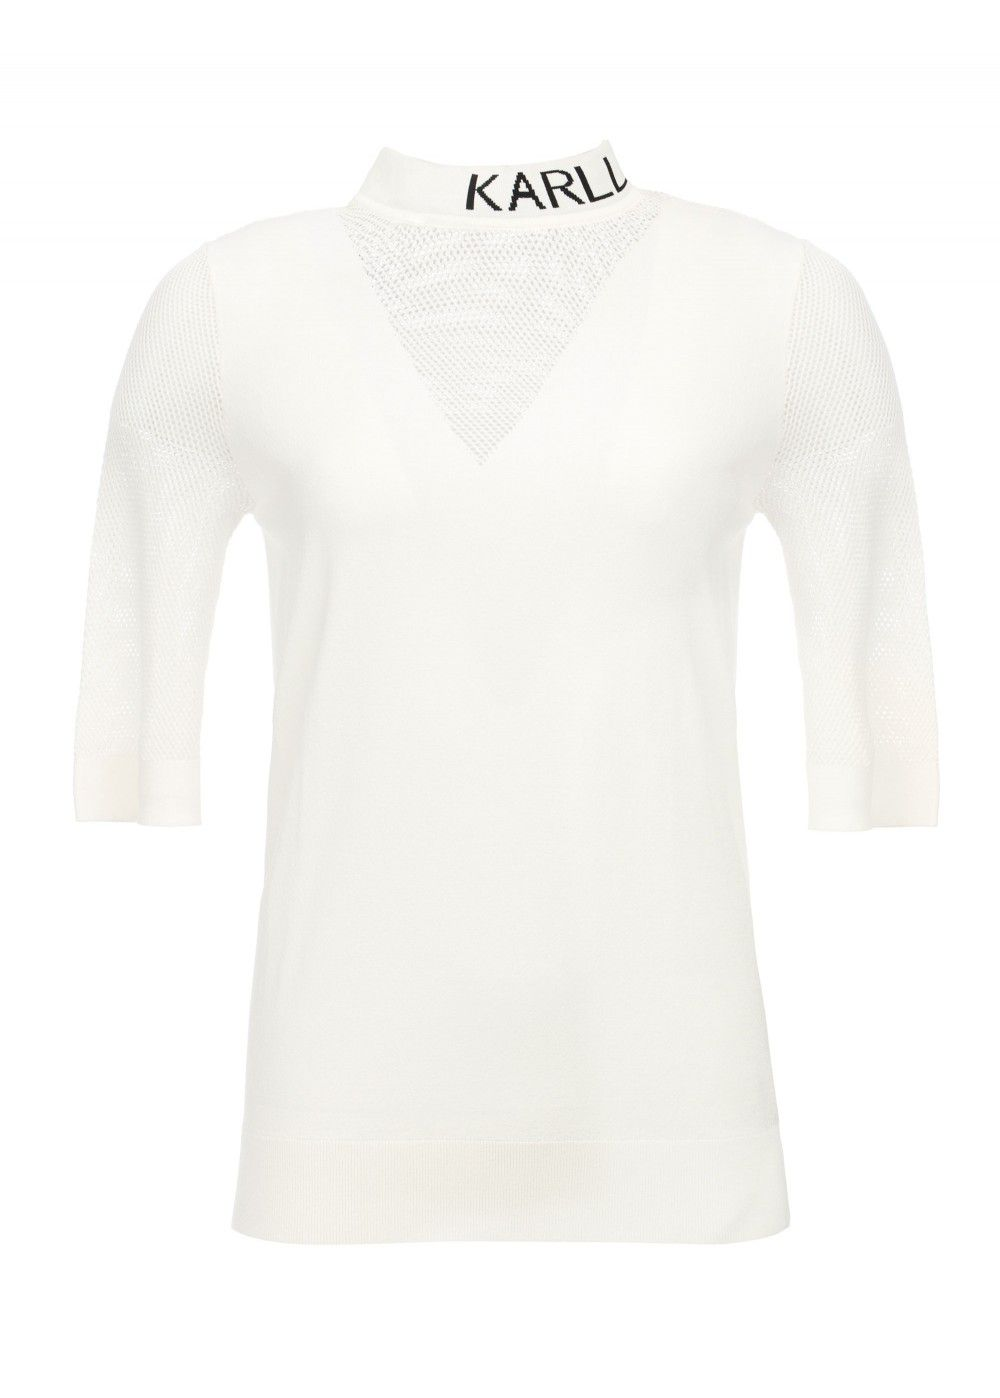 Karl Lagerfeld Logo Mesh Shirt in White